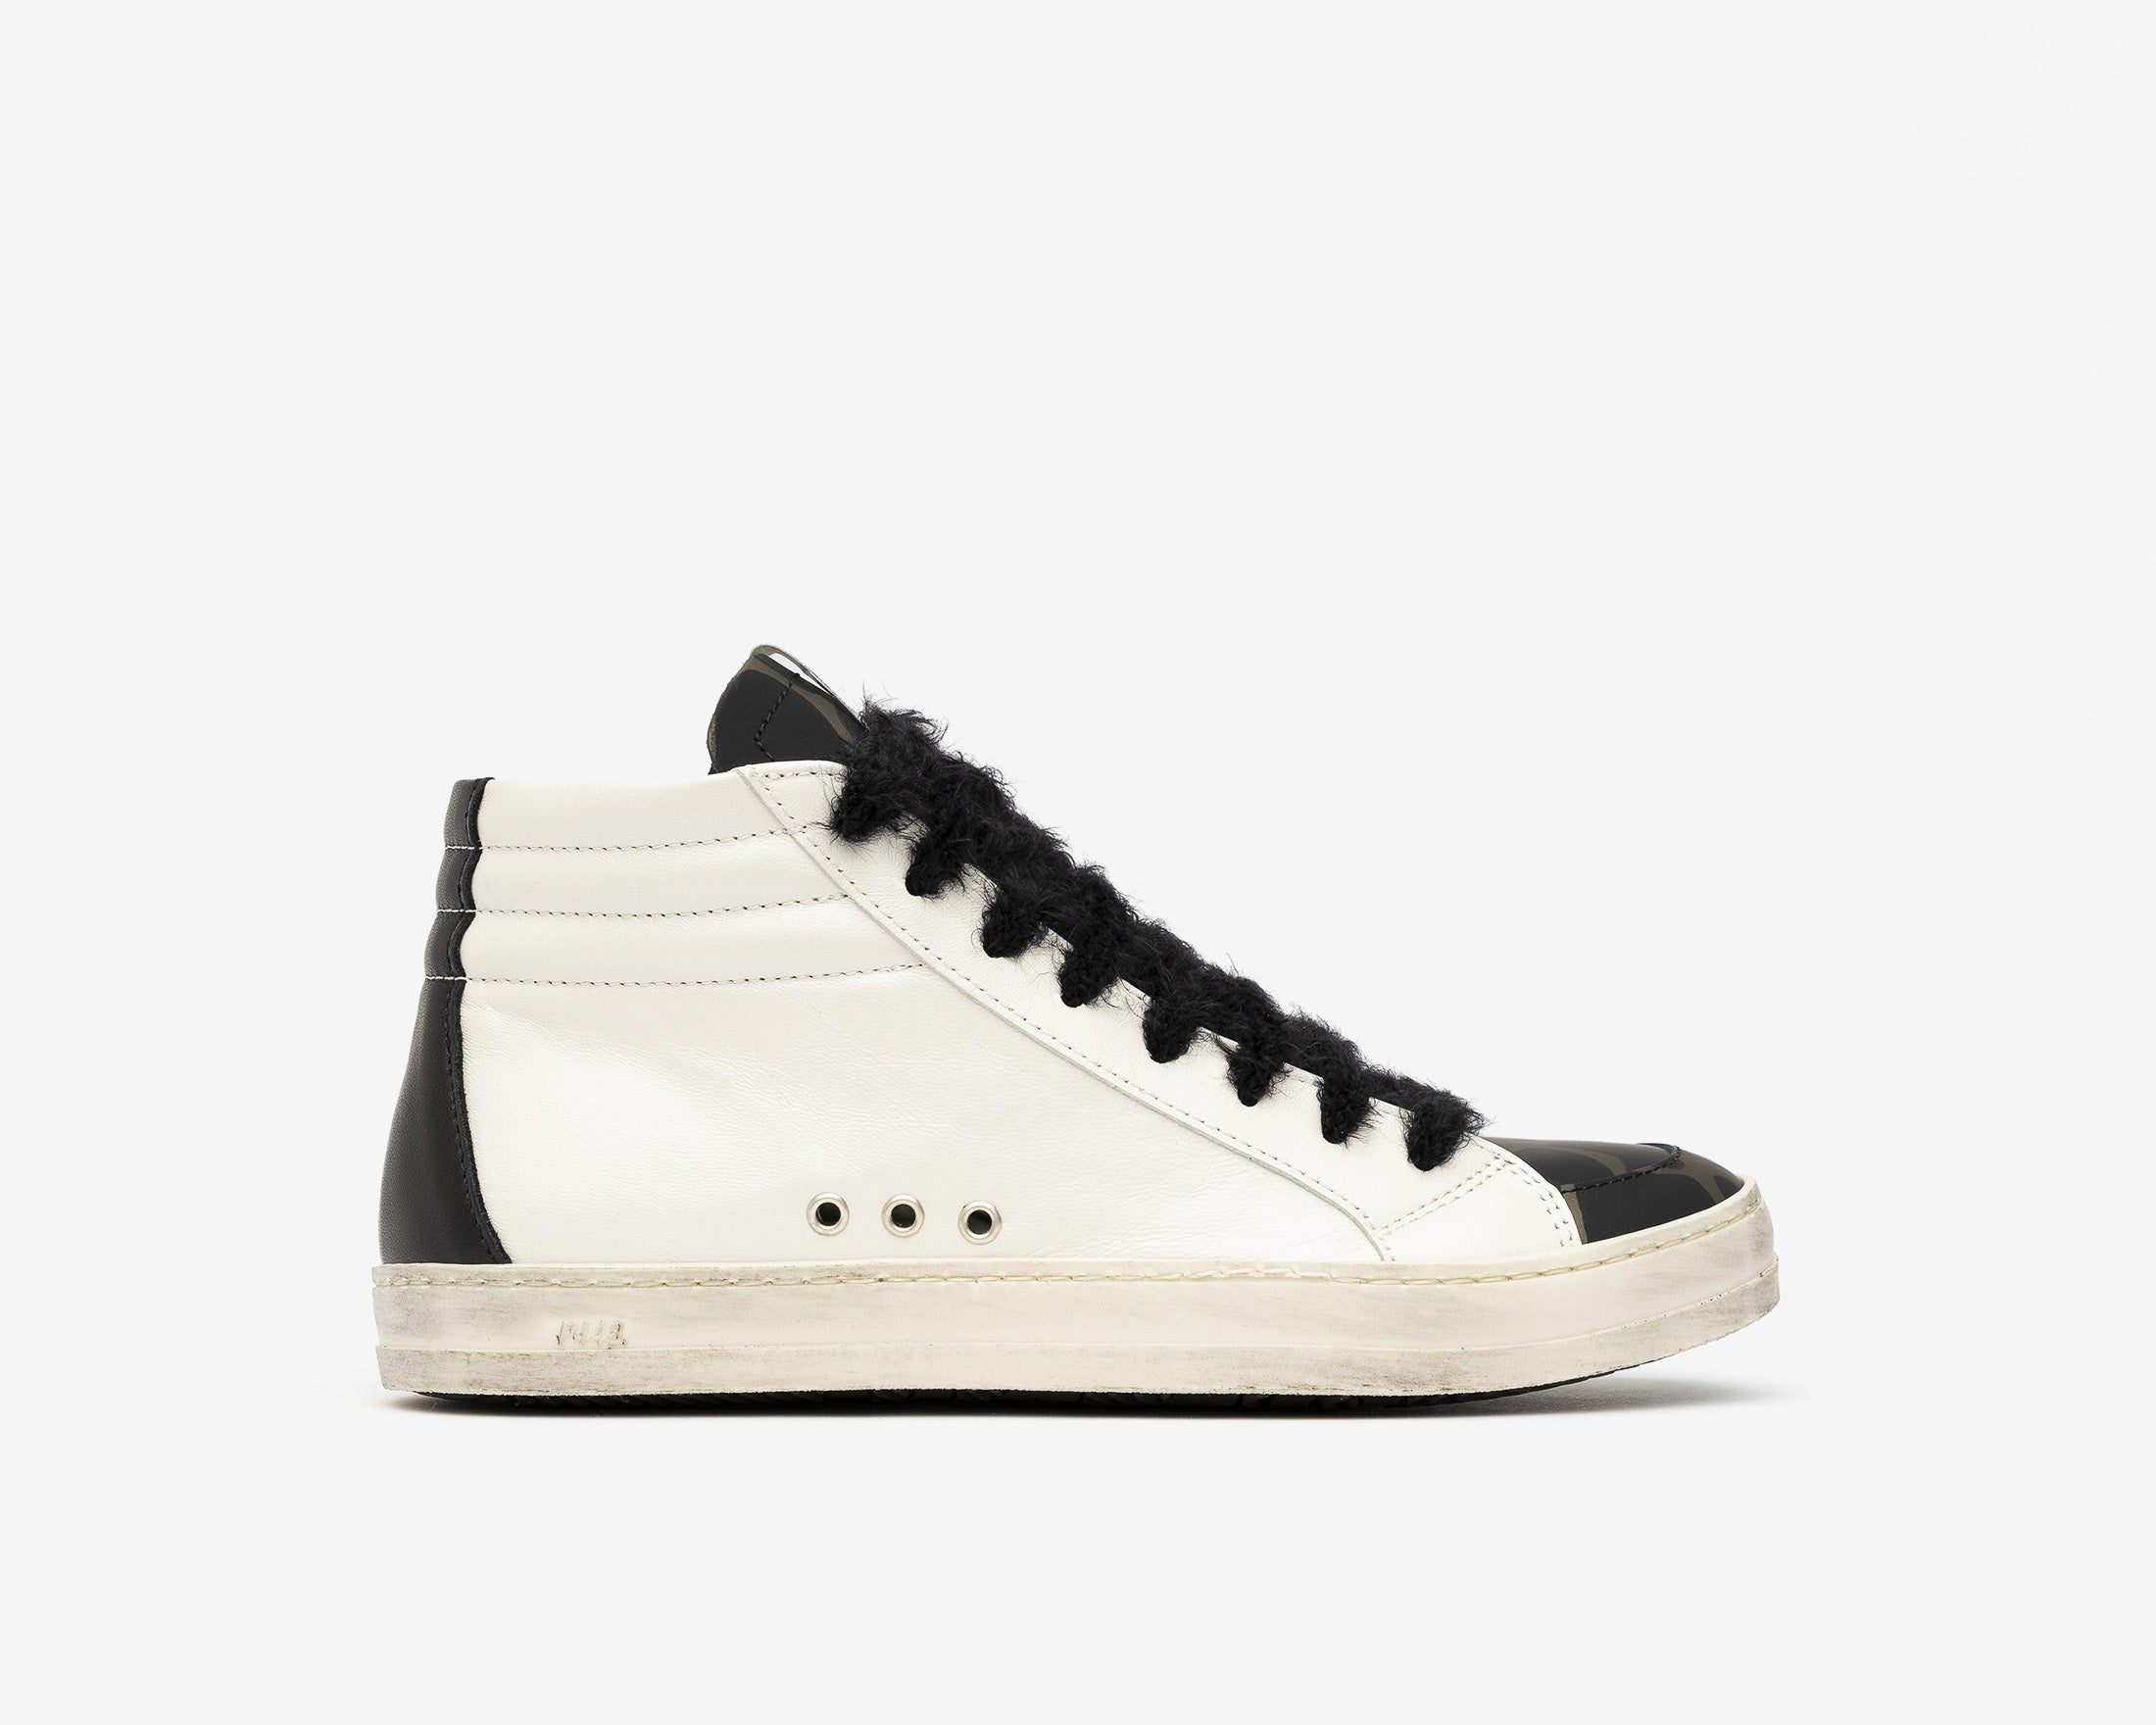 Skate High-Top Sneaker in White/Army Giraffe - Profile